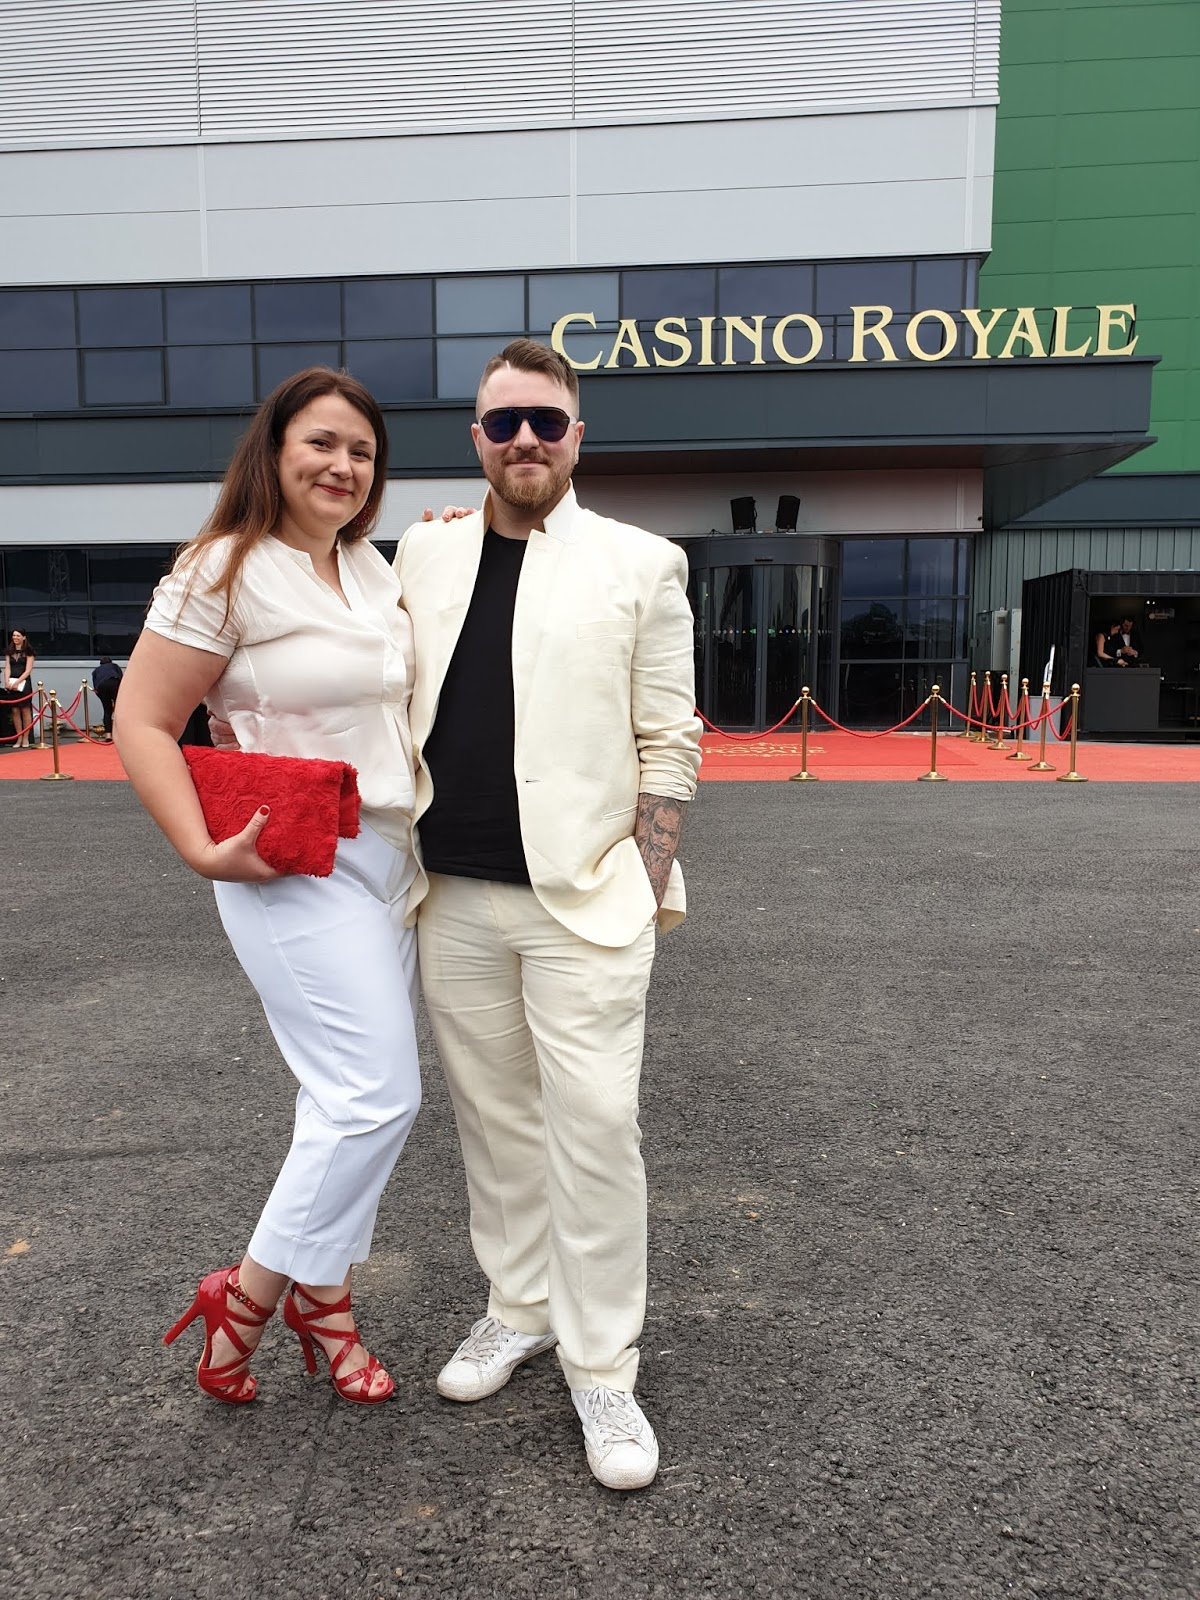 man and woman at casino royale secret cinema